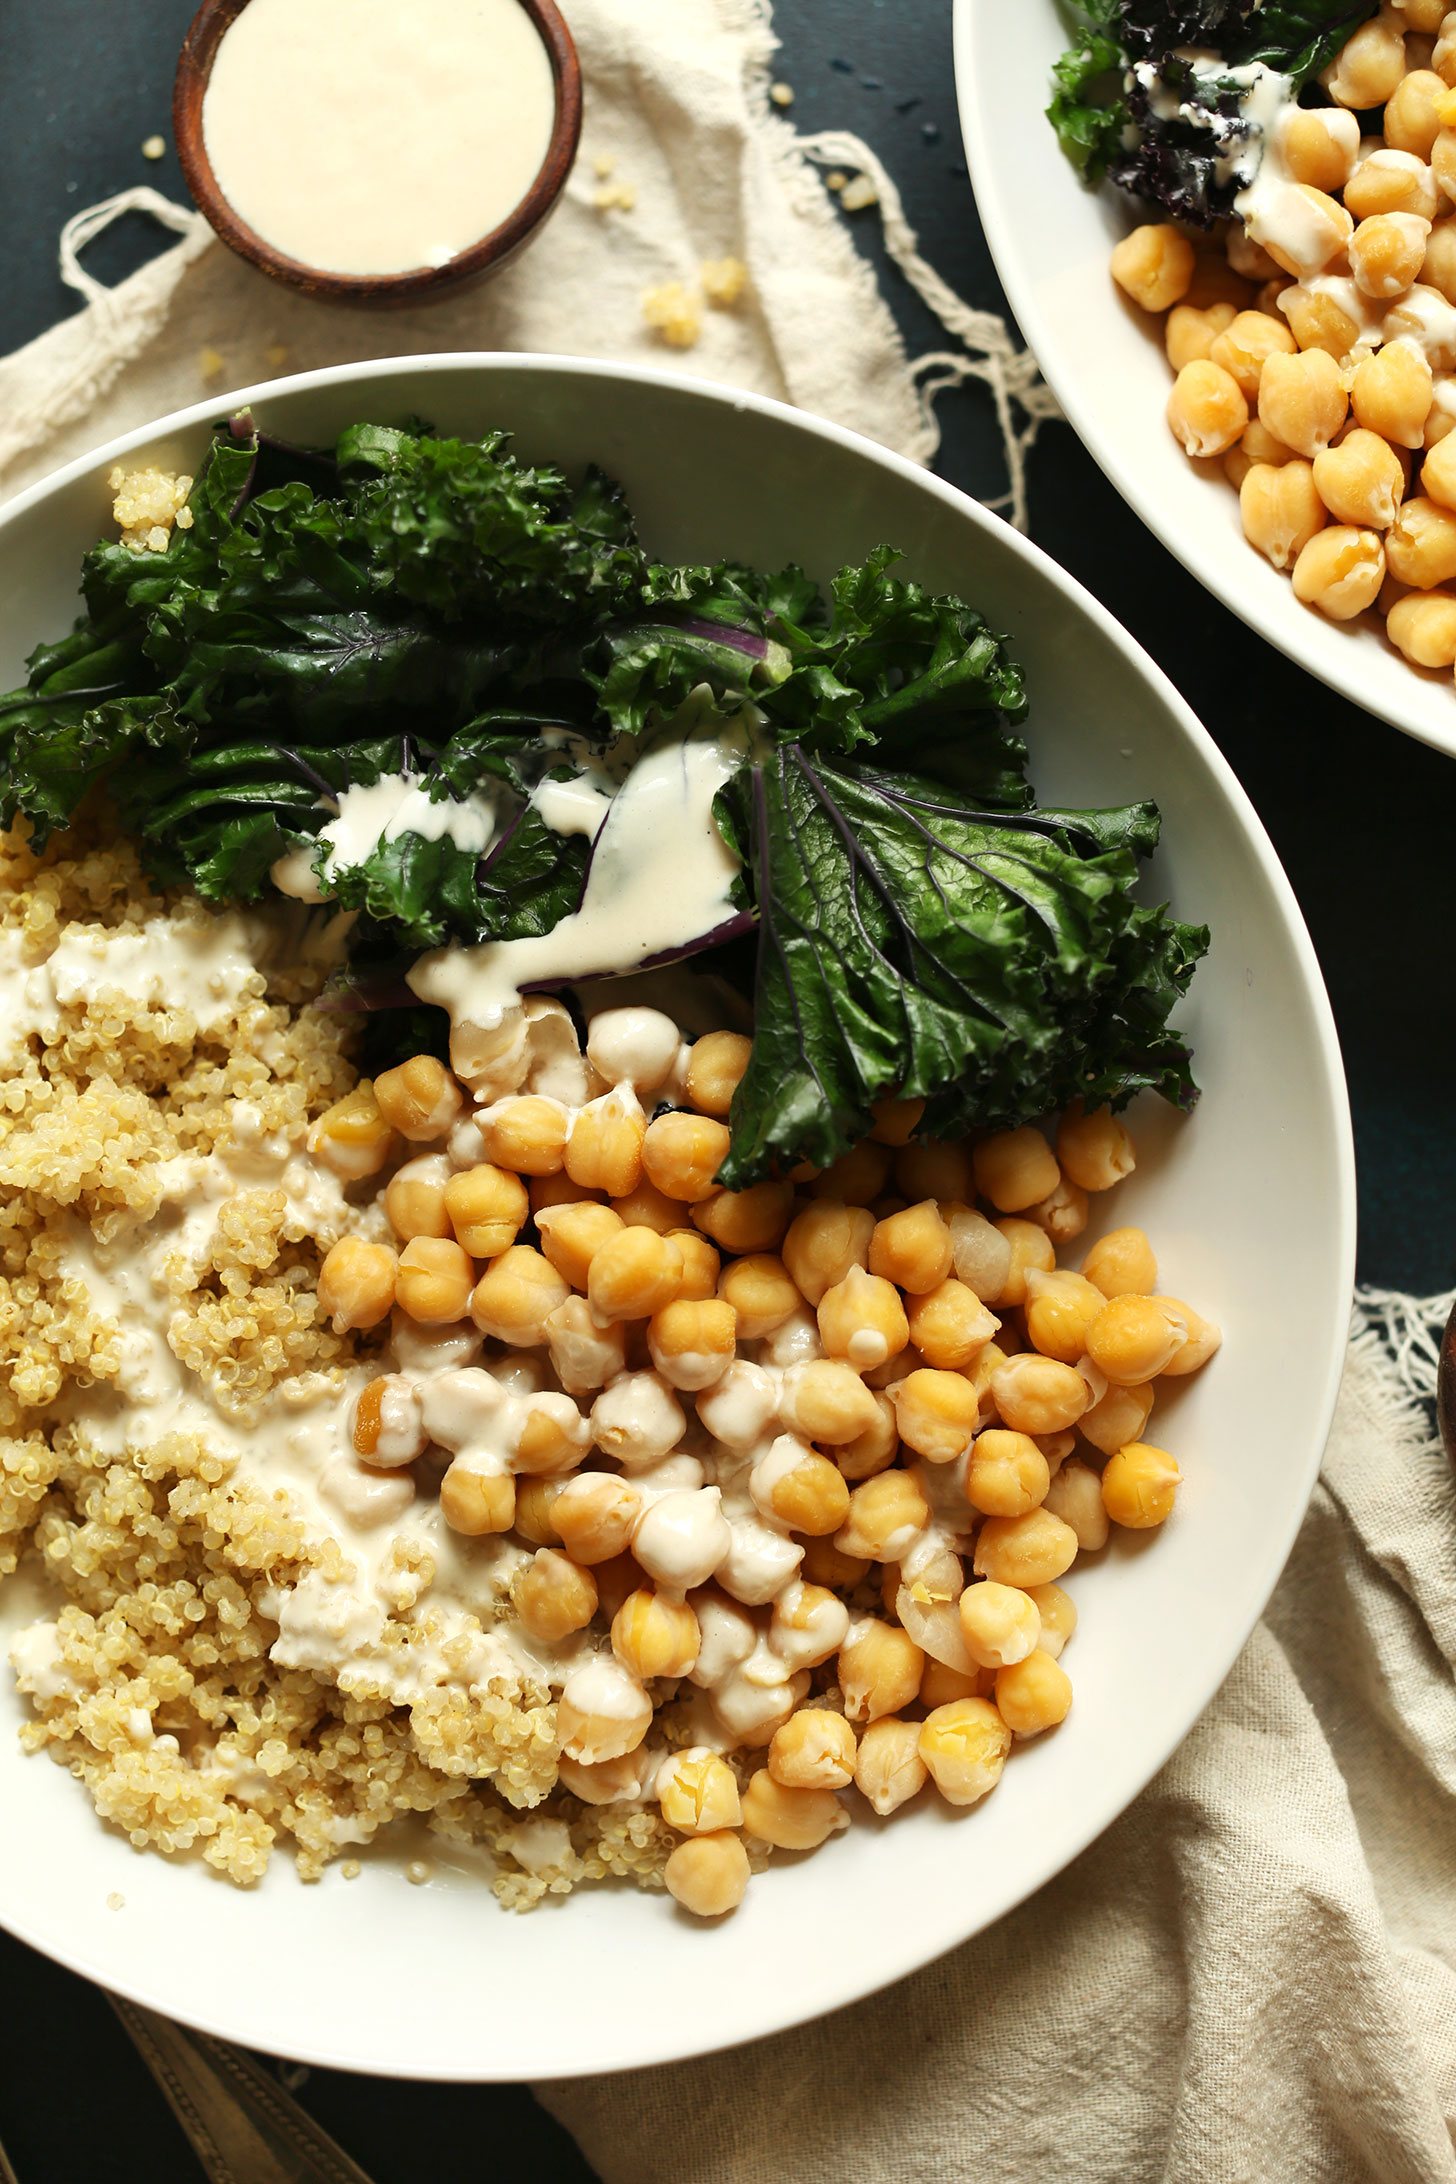 Servings of our Quinoa Chickpea Buddha Bowls with Kale and Tahini Sauce for a delicious plant-based meal